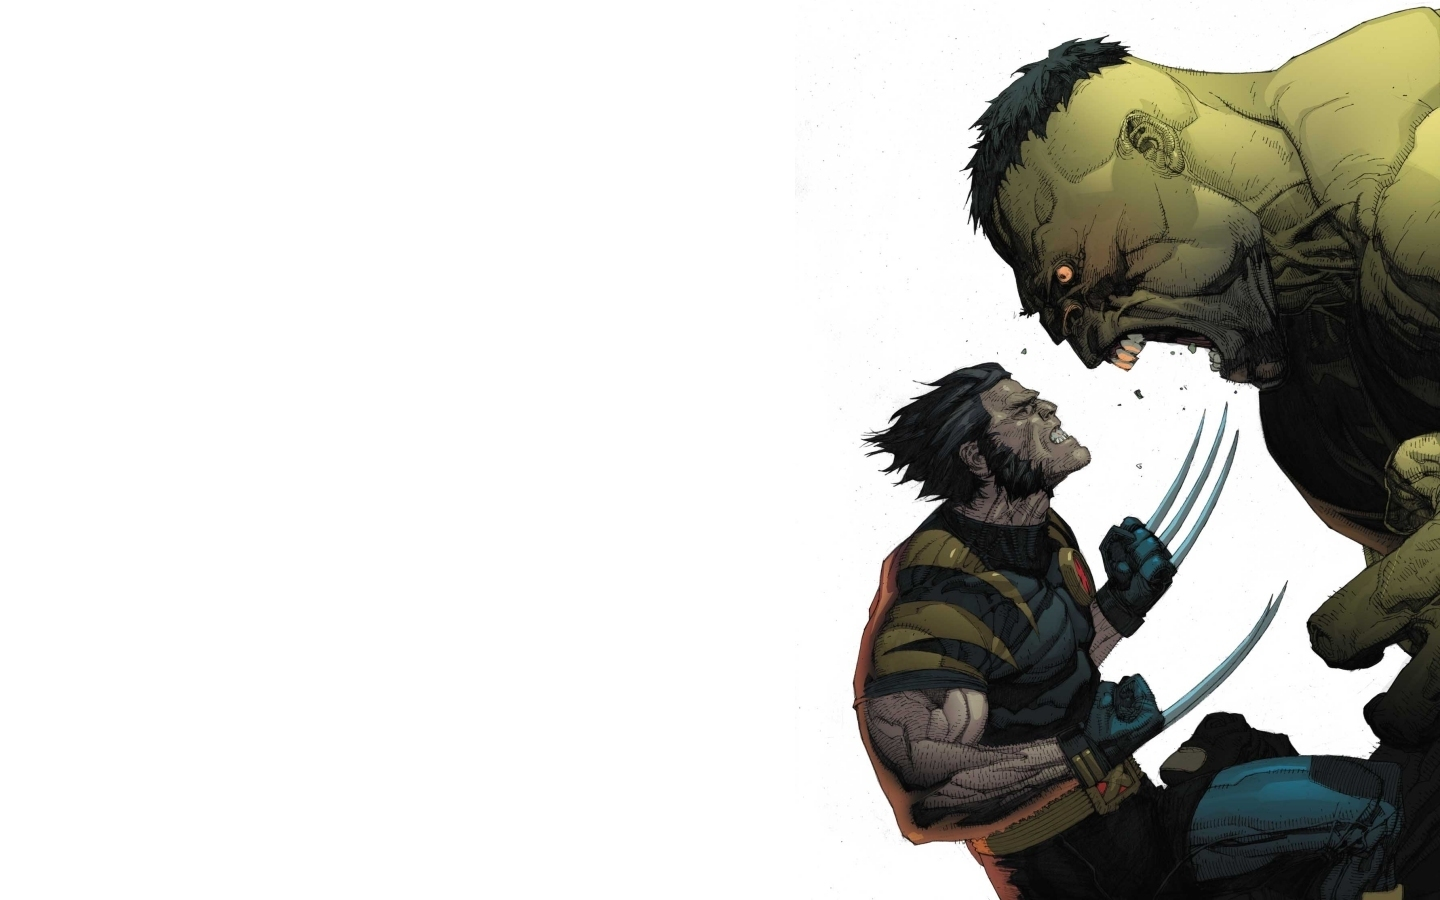 marvel wallpapers hulk wolverine